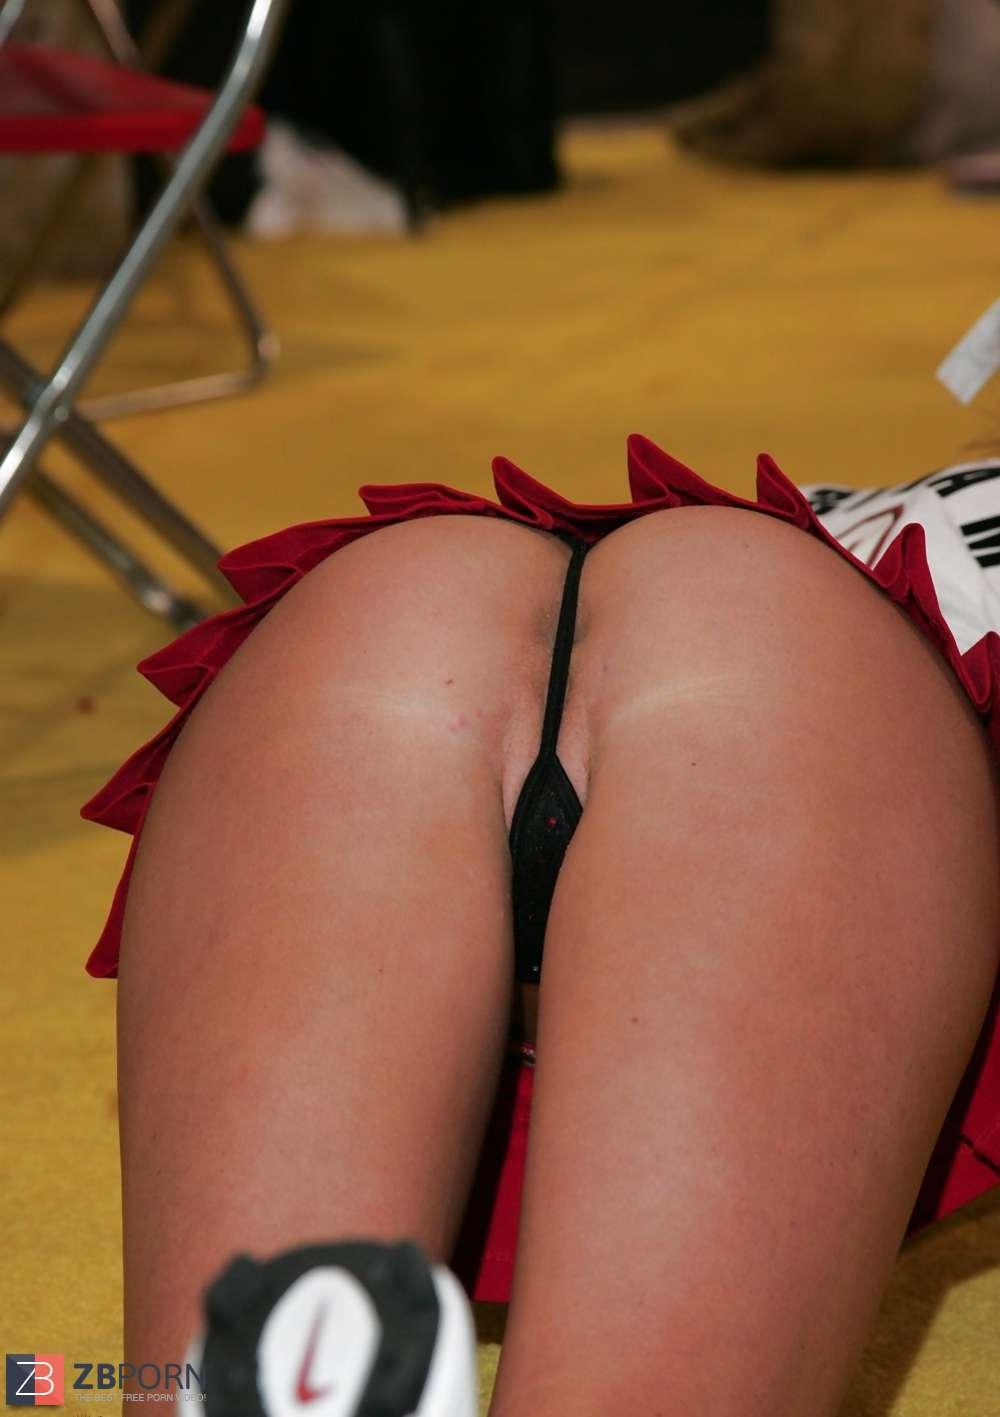 Think, that Upskirt cheerleader flashes for that